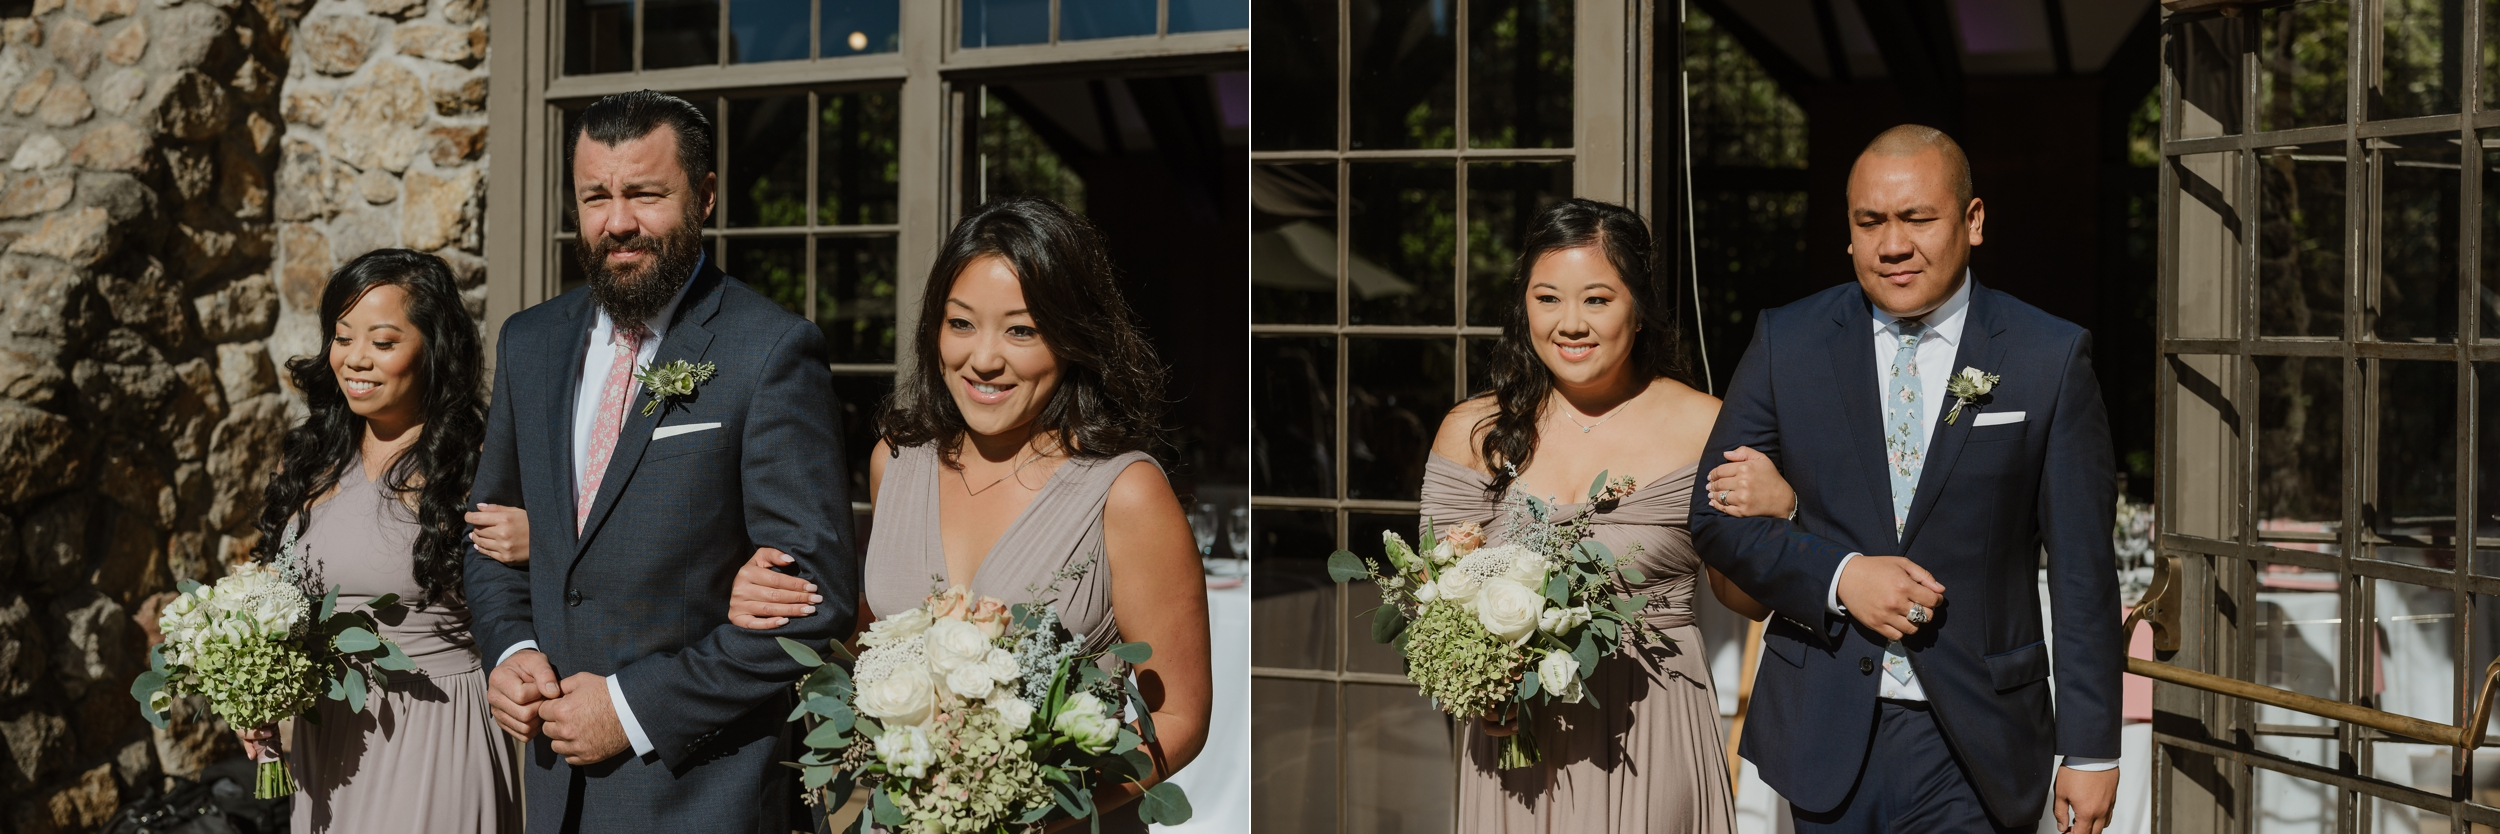 19-berkeley-tilden-park-brazilian-room-wedding-vivianchen-122_WEB.jpg